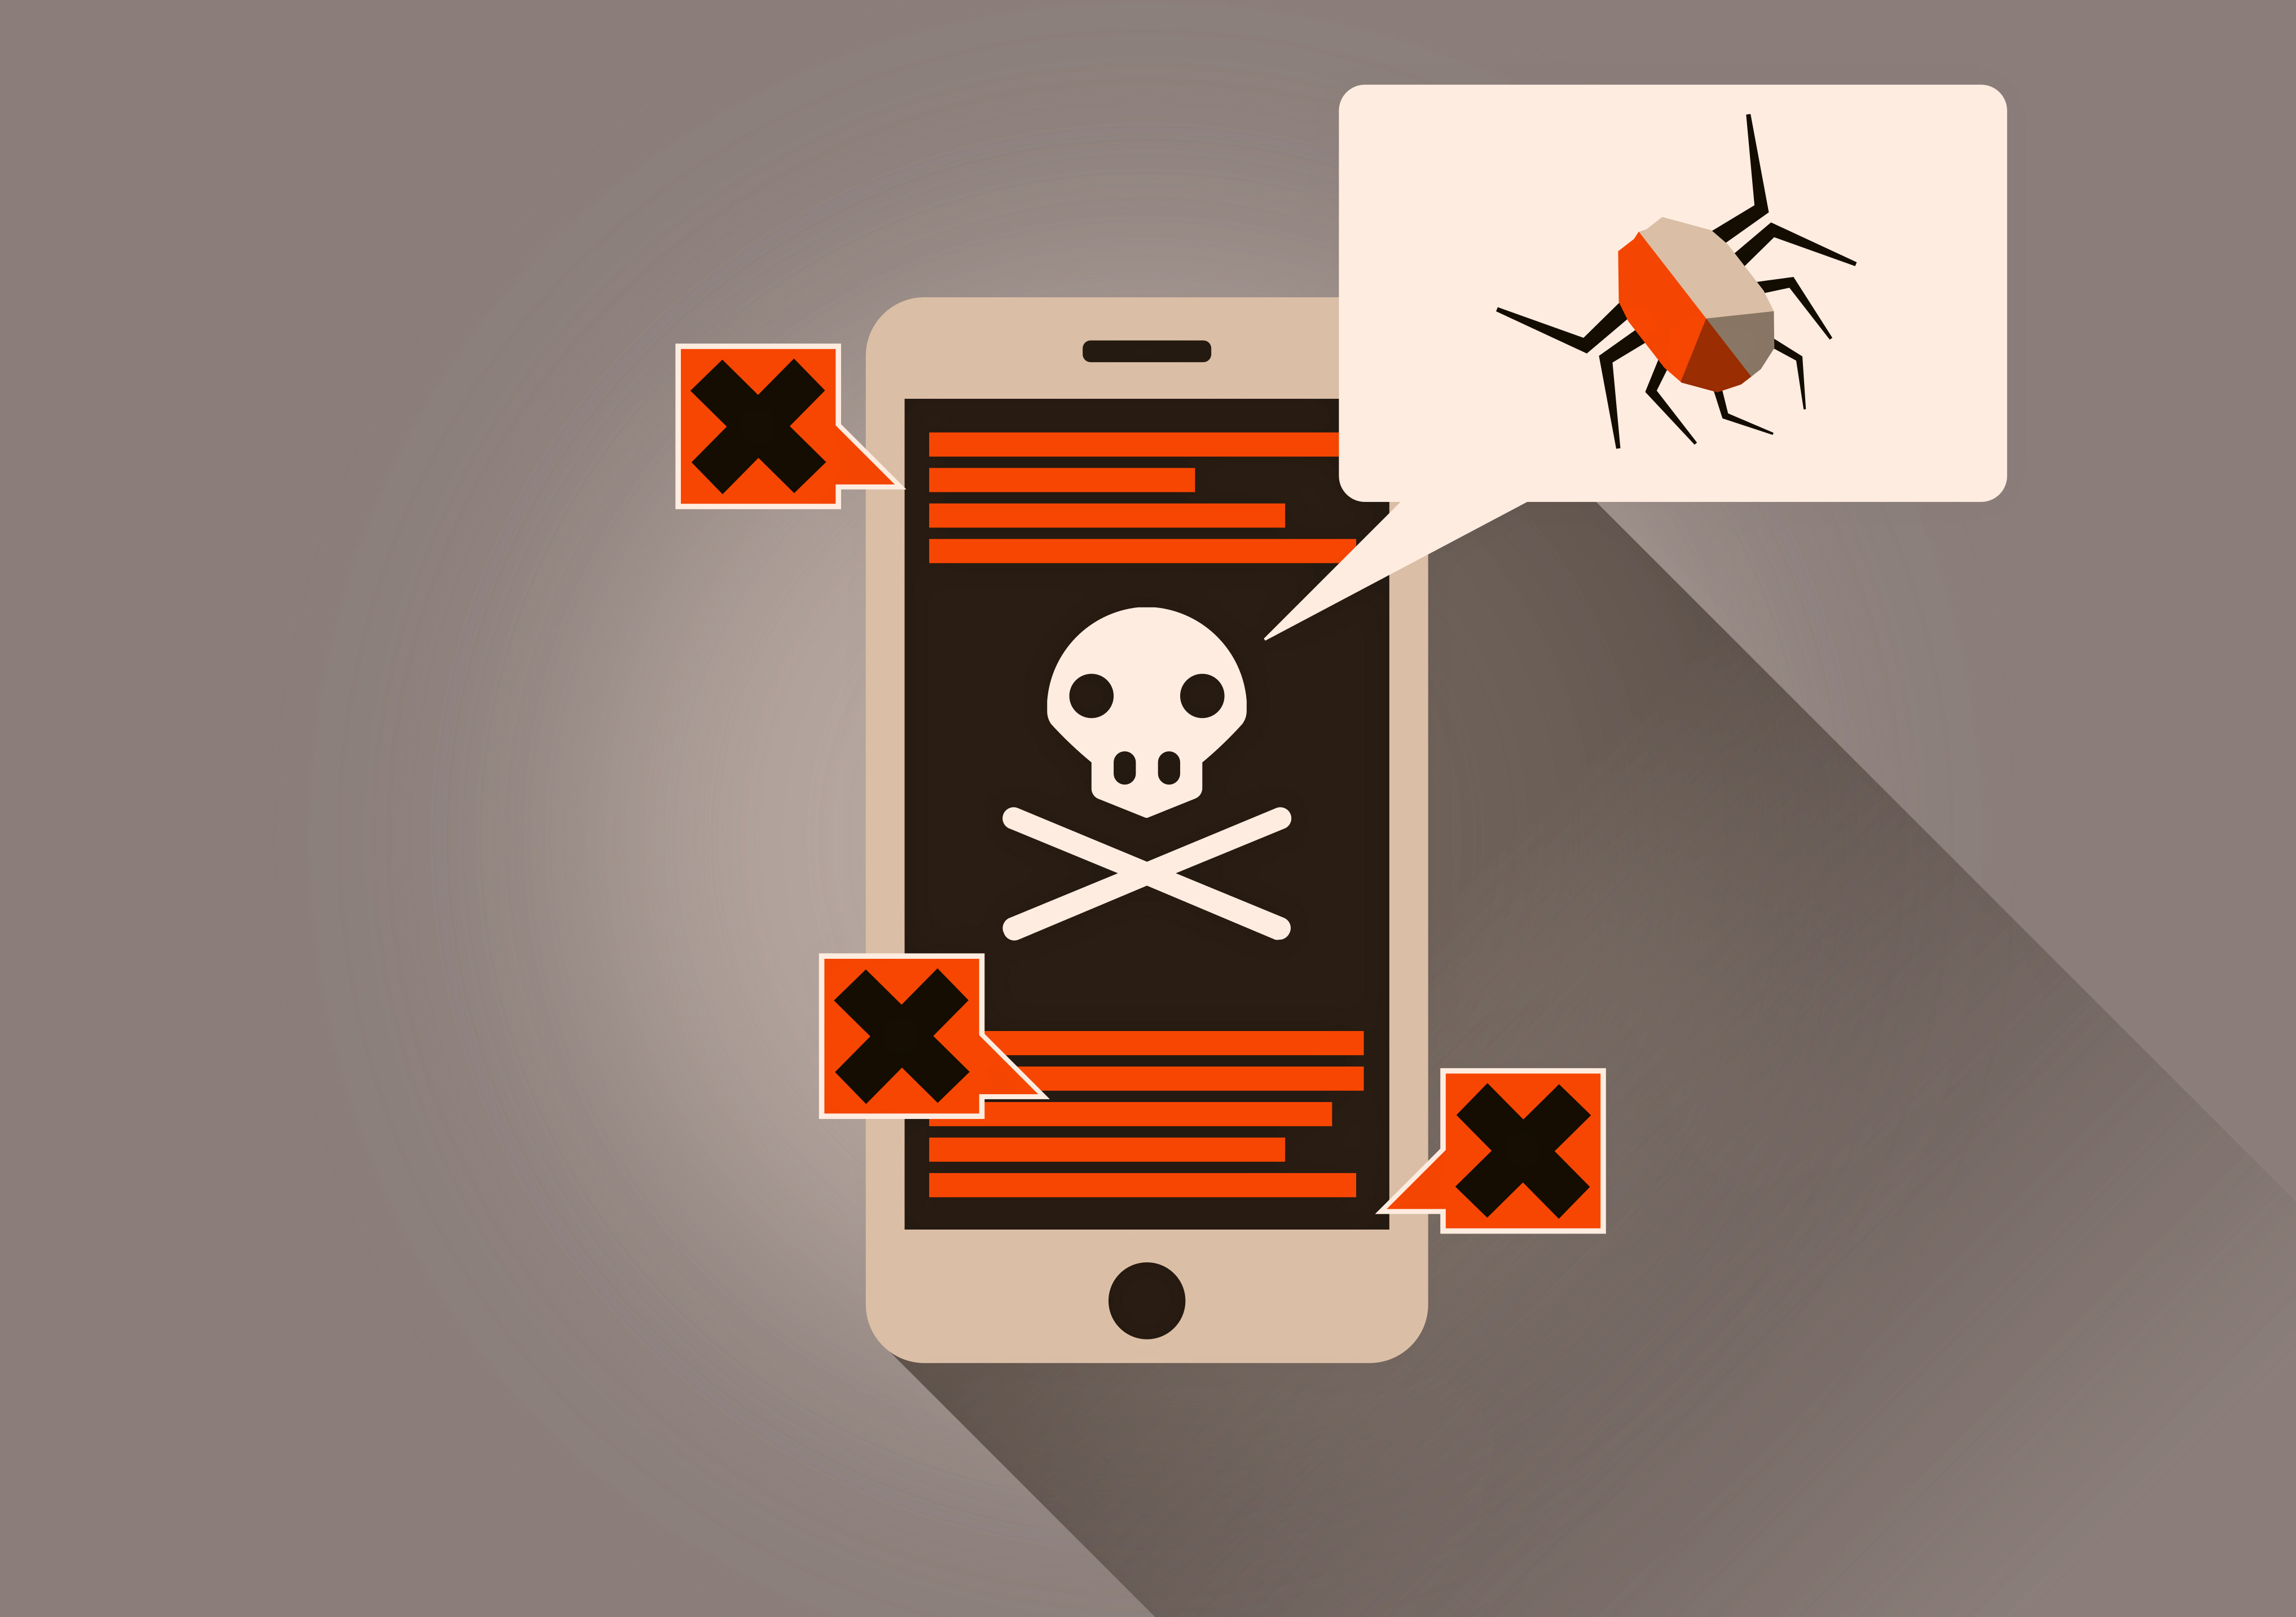 Infected Smartphone - On-Line Security Threat, Access, Secret, Online, Onlinesecurity, HQ Photo